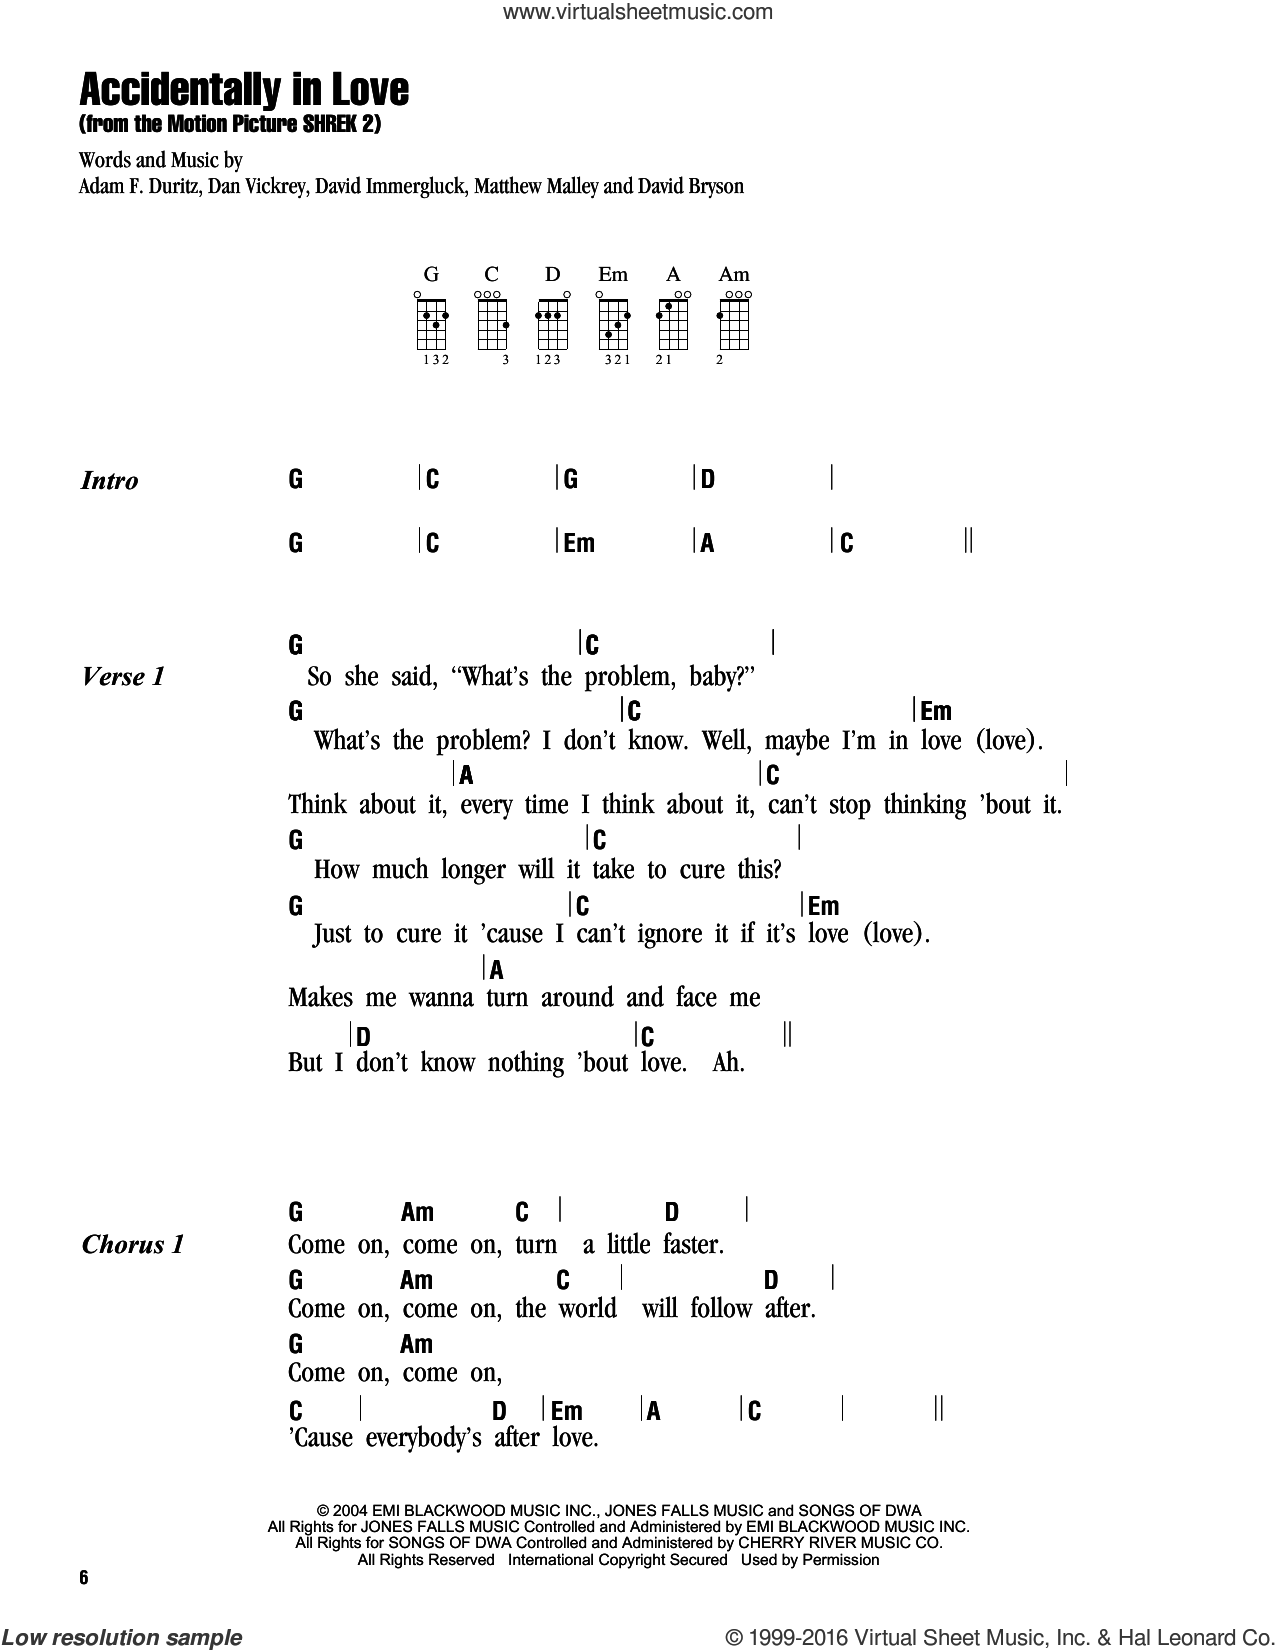 Crows accidentally in love sheet music for ukulele chords accidentally in love sheet music for ukulele chords by counting crows intermediate hexwebz Image collections